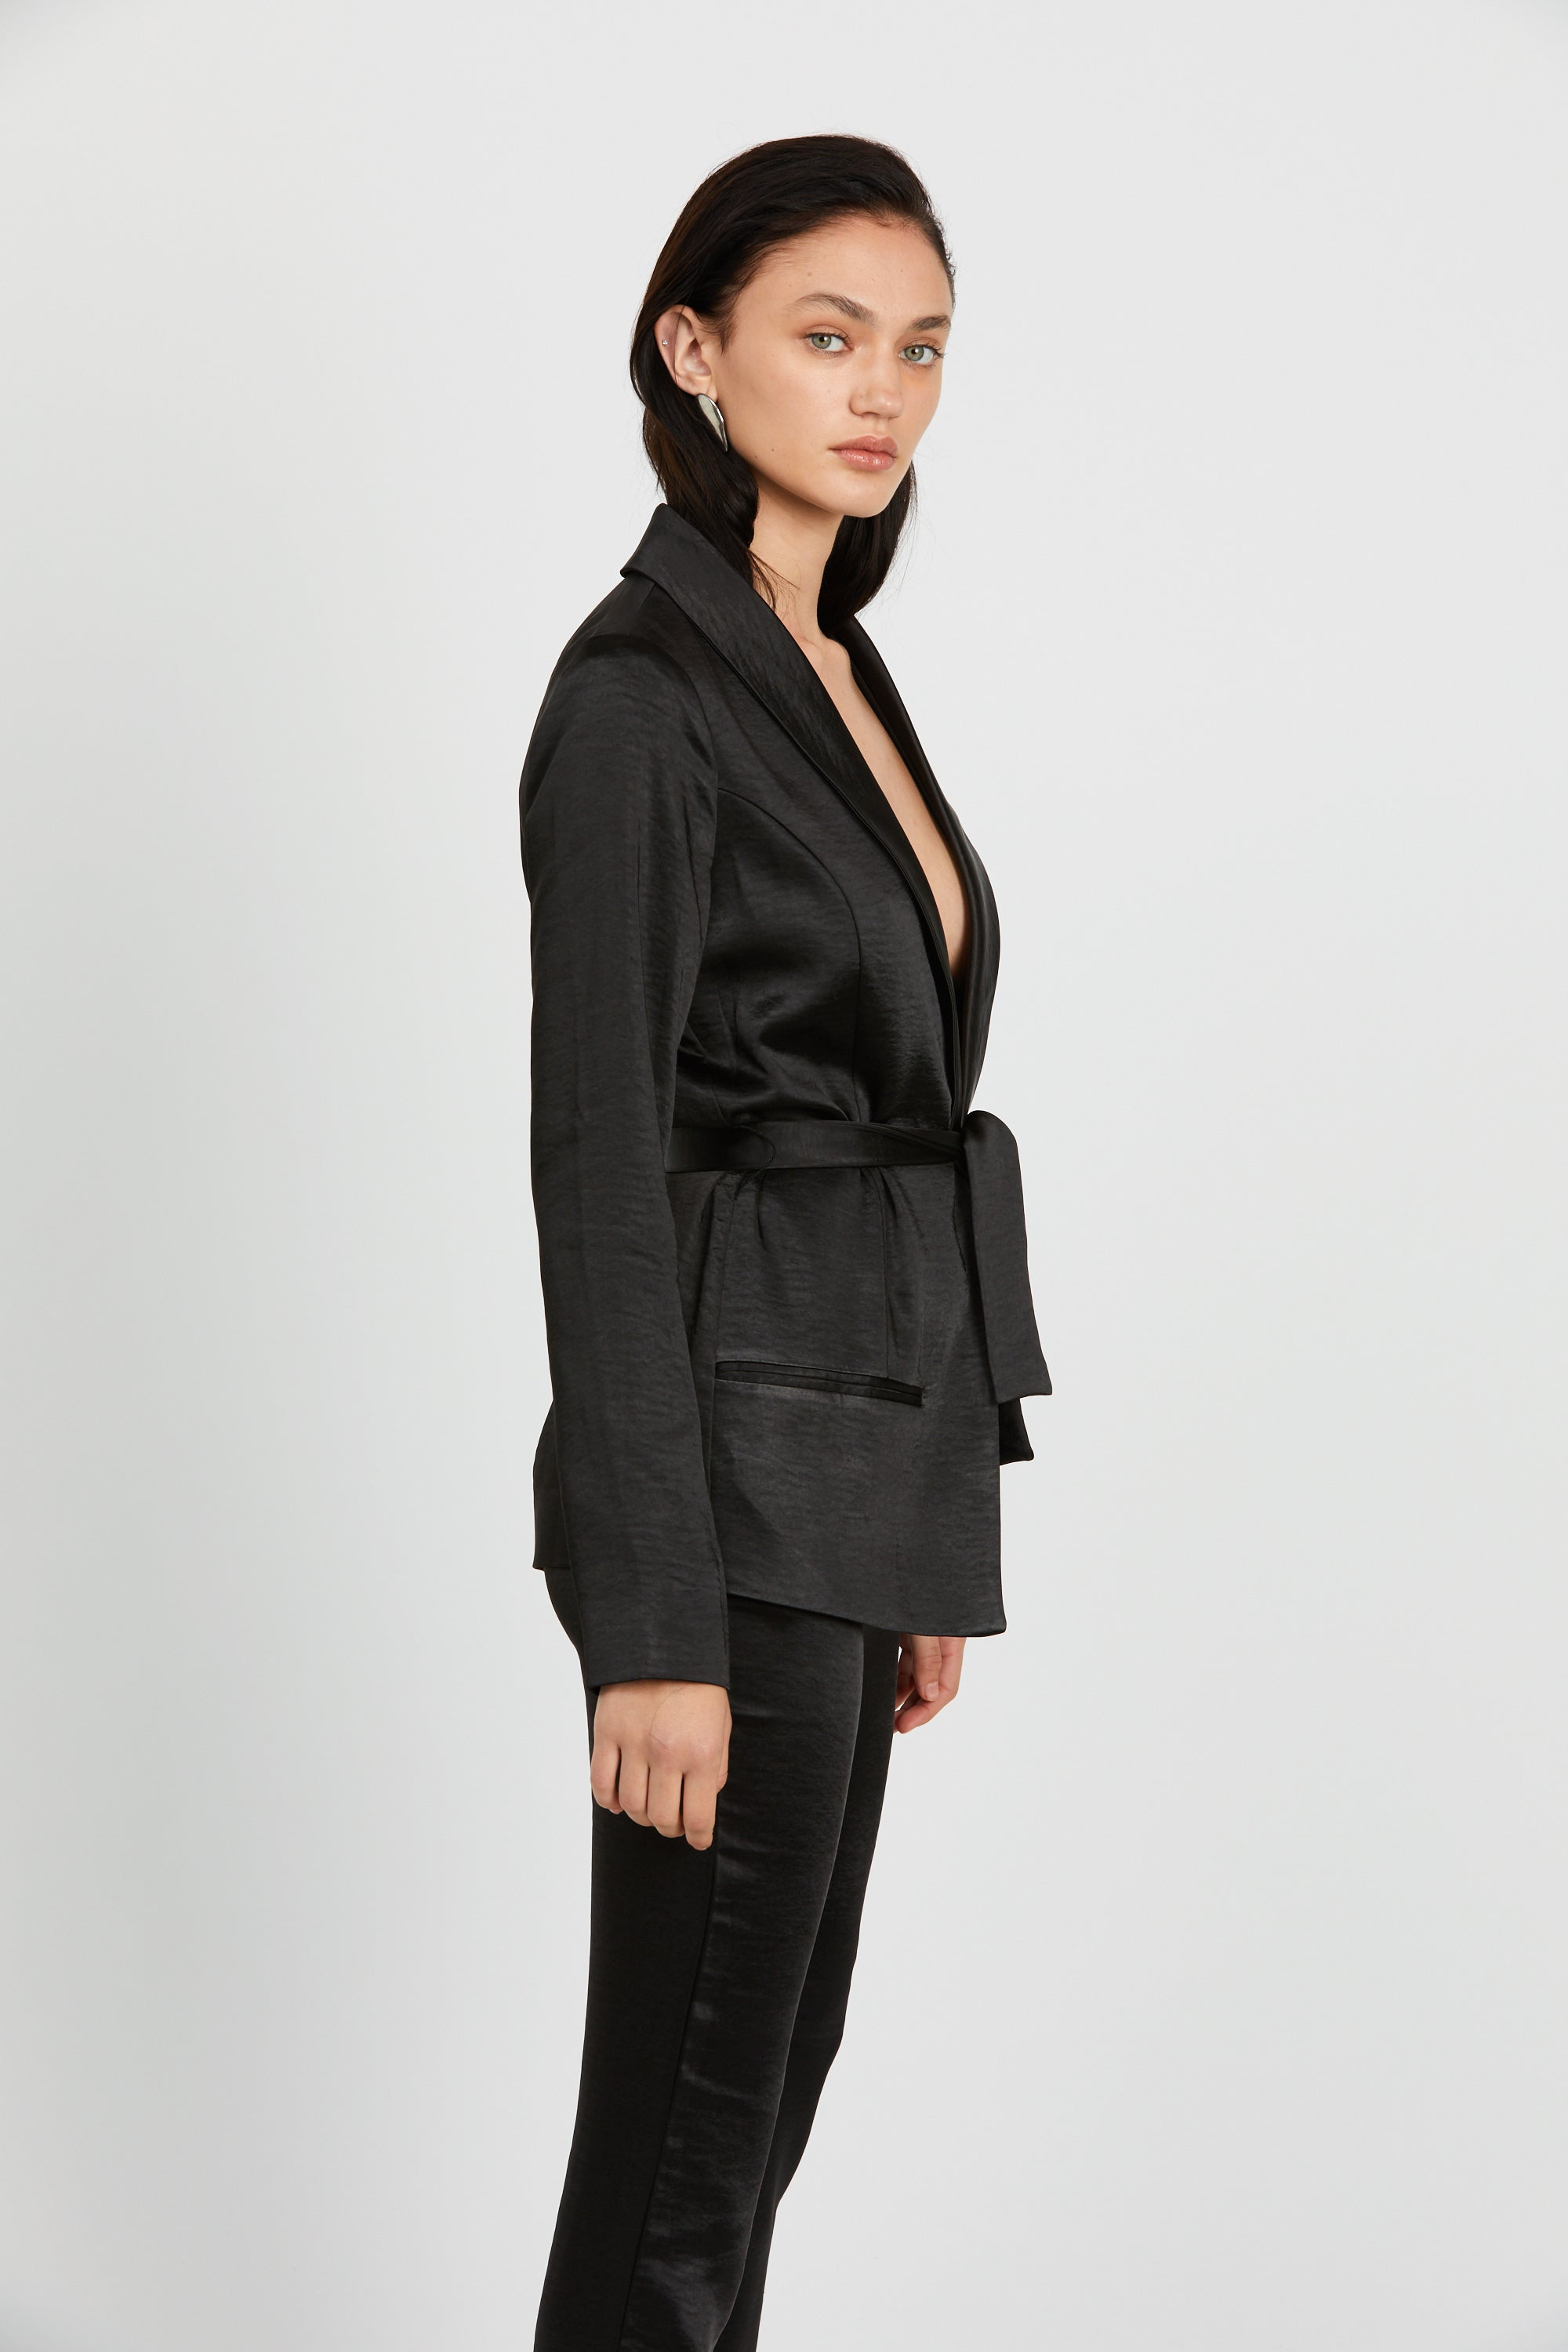 WILD FLOWERS ROBE BLAZER | BLACK